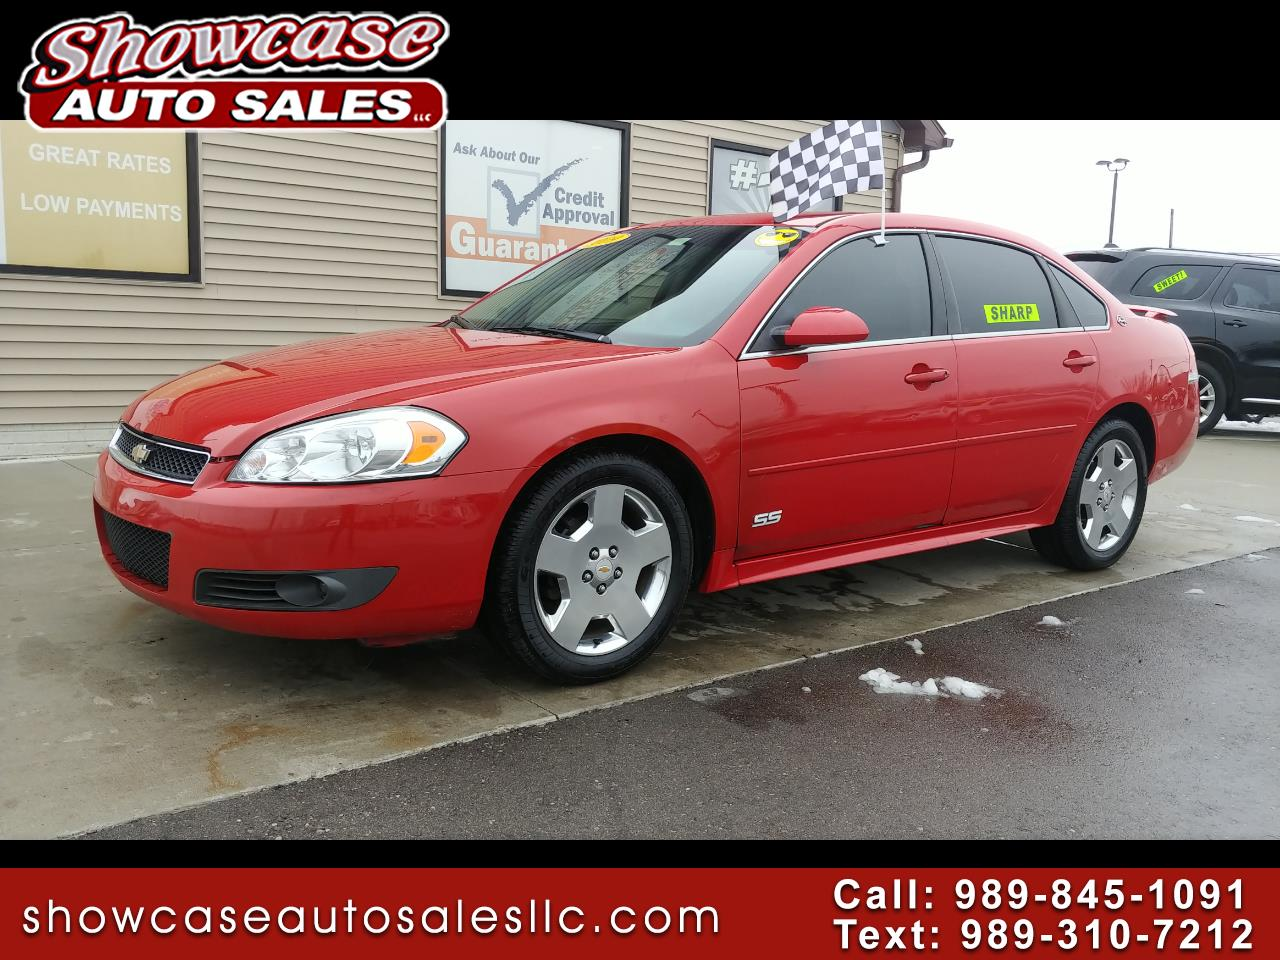 hight resolution of 2009 chevrolet impala ss fwd